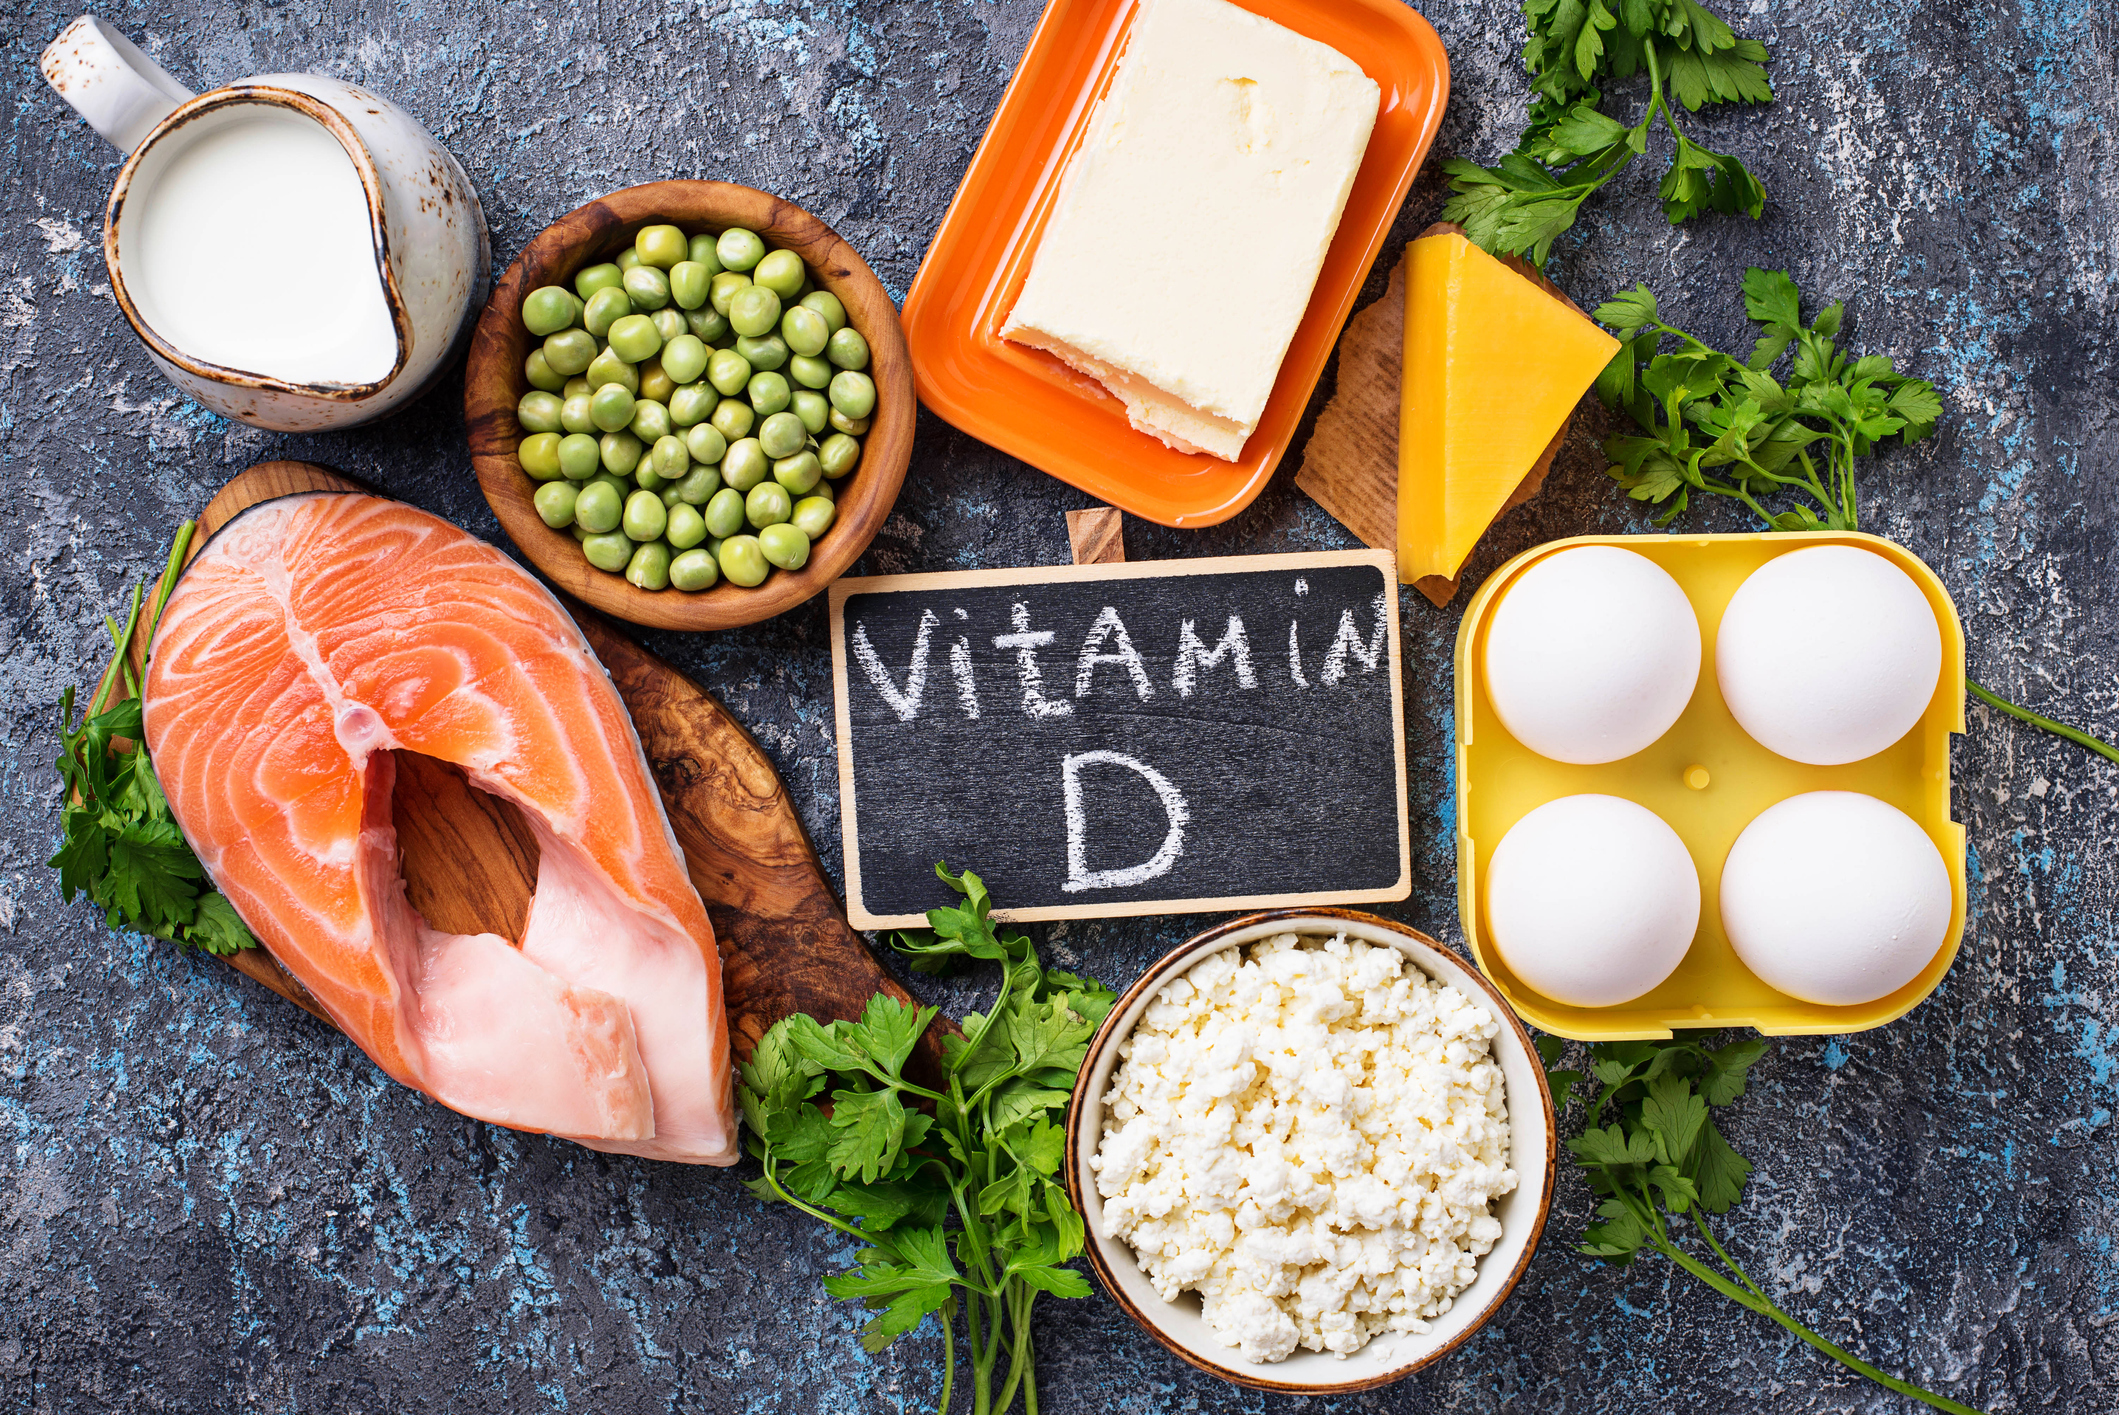 Find a Pharmacy for Vitamin D Supplements